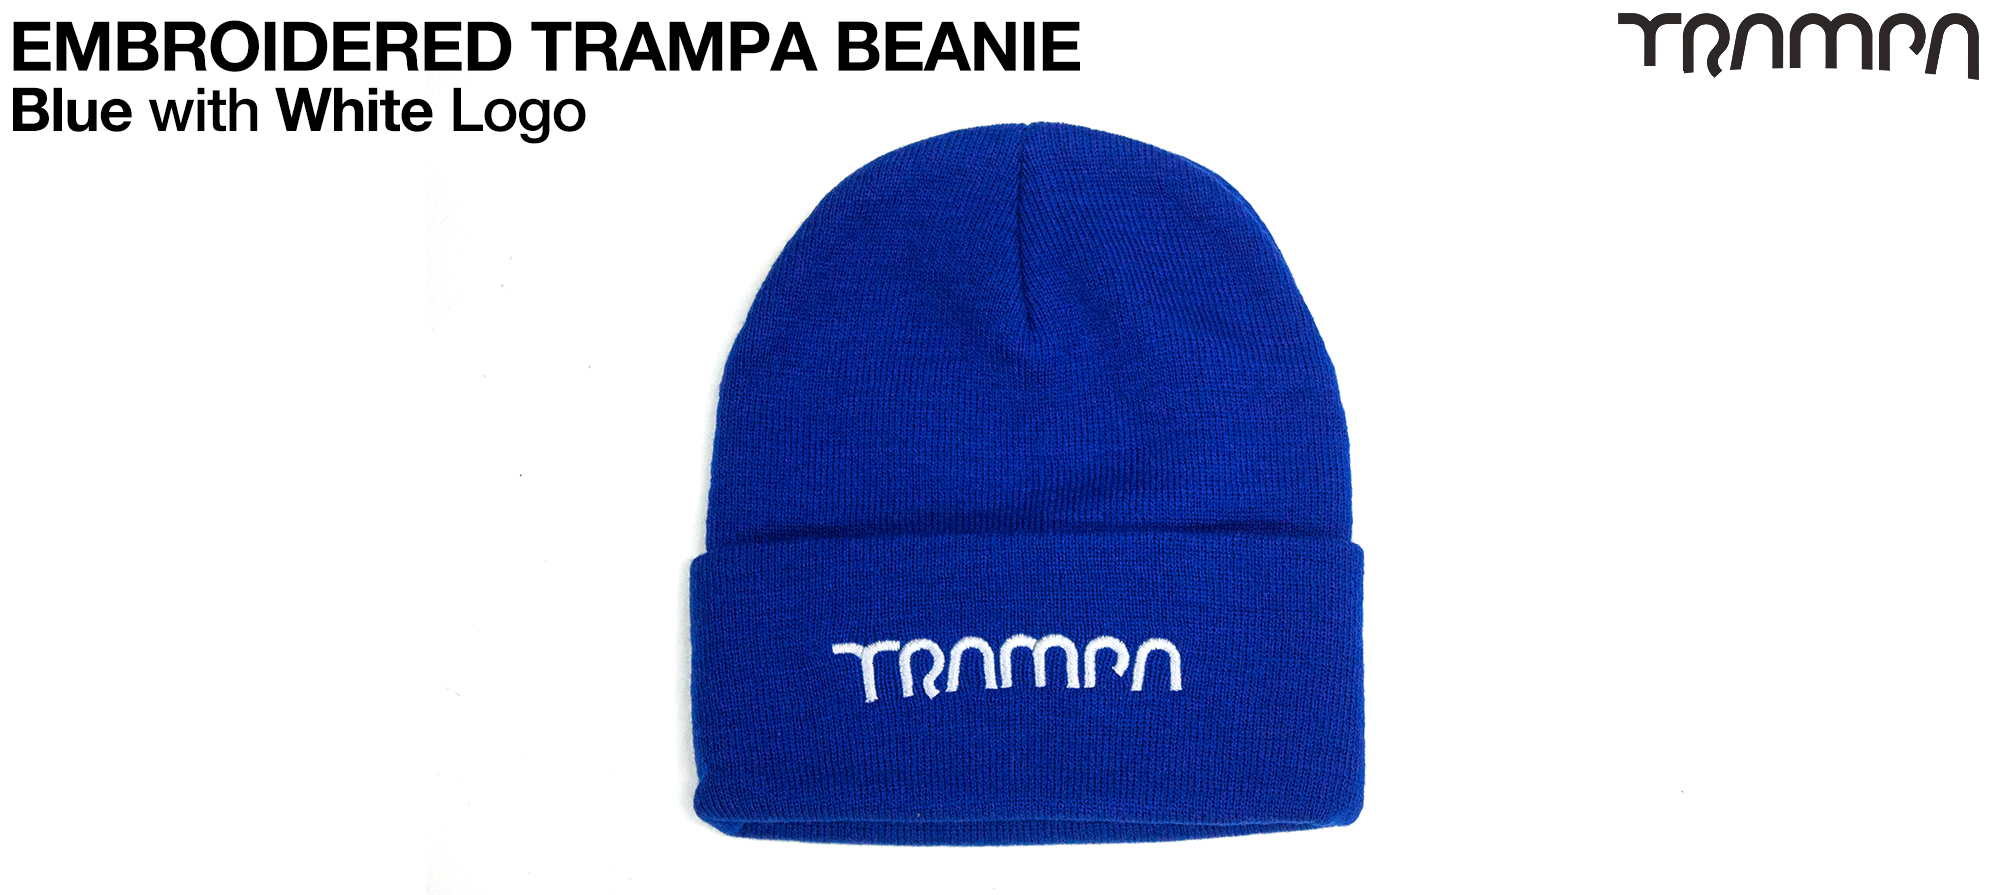 BLUE Wooli Hat with WHTE TRAMPA Embroidery - Double thick turn over for extra warmth